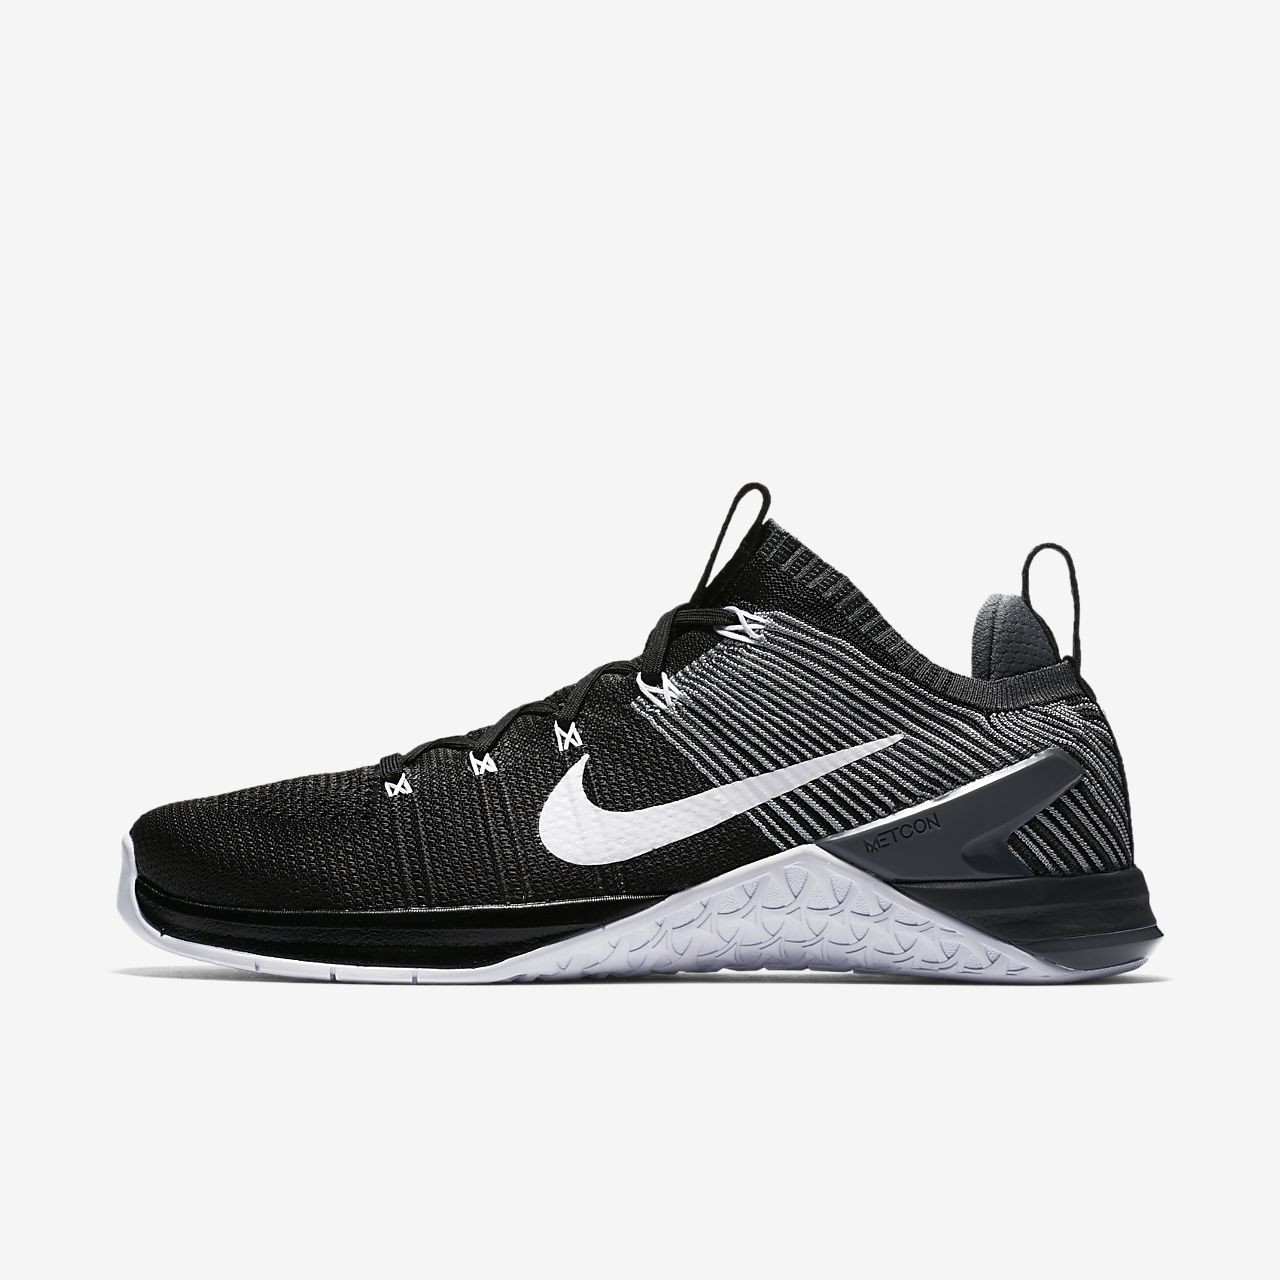 ab76cfeca431 Nike Metcon Dsx Flyknit   Buy Nike Shoes   Sneakers ...